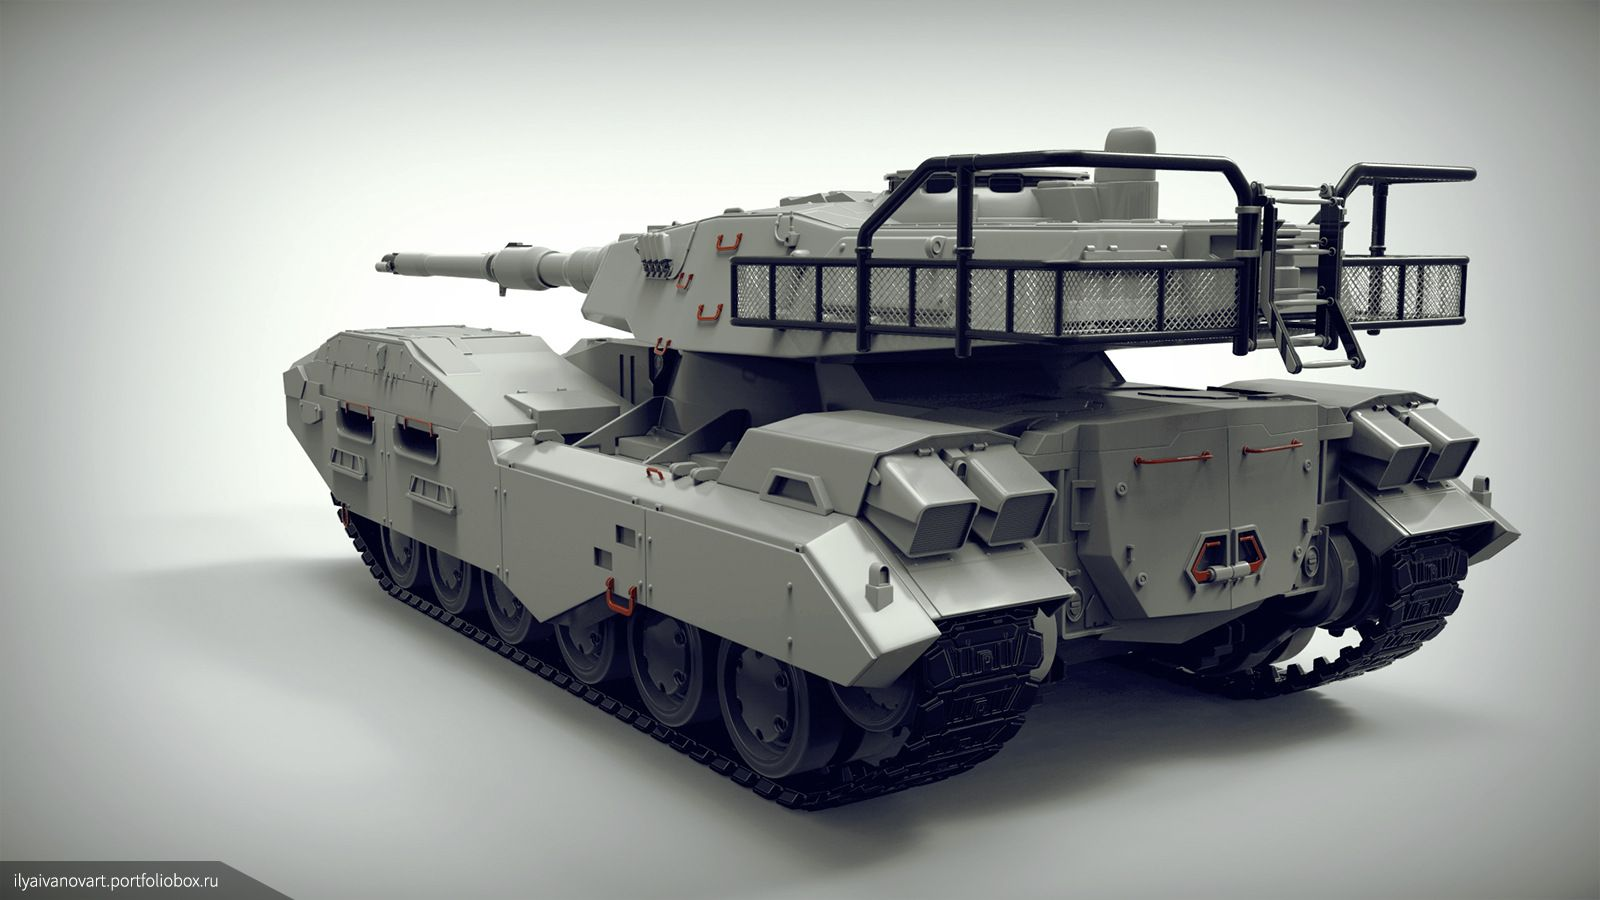 Future Military Tanks @portfoliobox |...